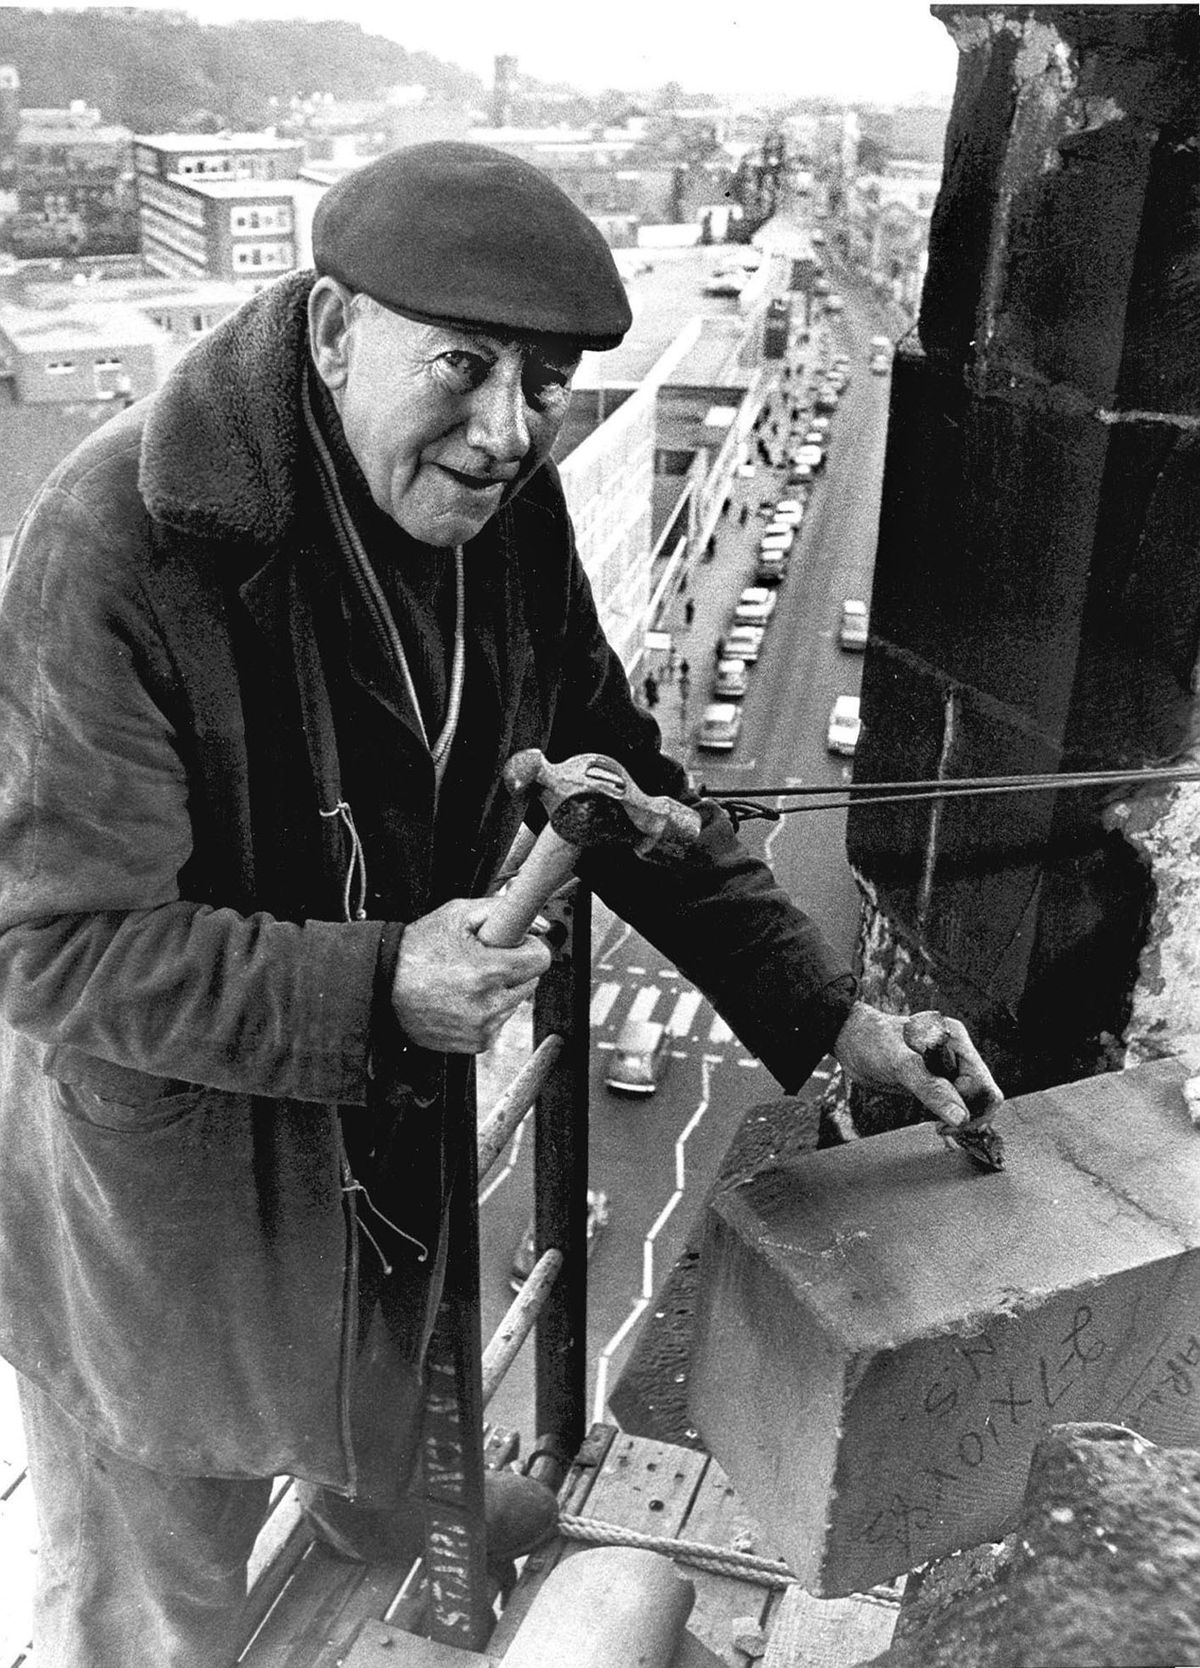 Les Dunn (68) is doing a job that would terrify most of us. Steeplejack Les, who was  repairing the stonework on St Thomas Church, Dudley, Worcs in 1975  was working 175 ft above the main street.